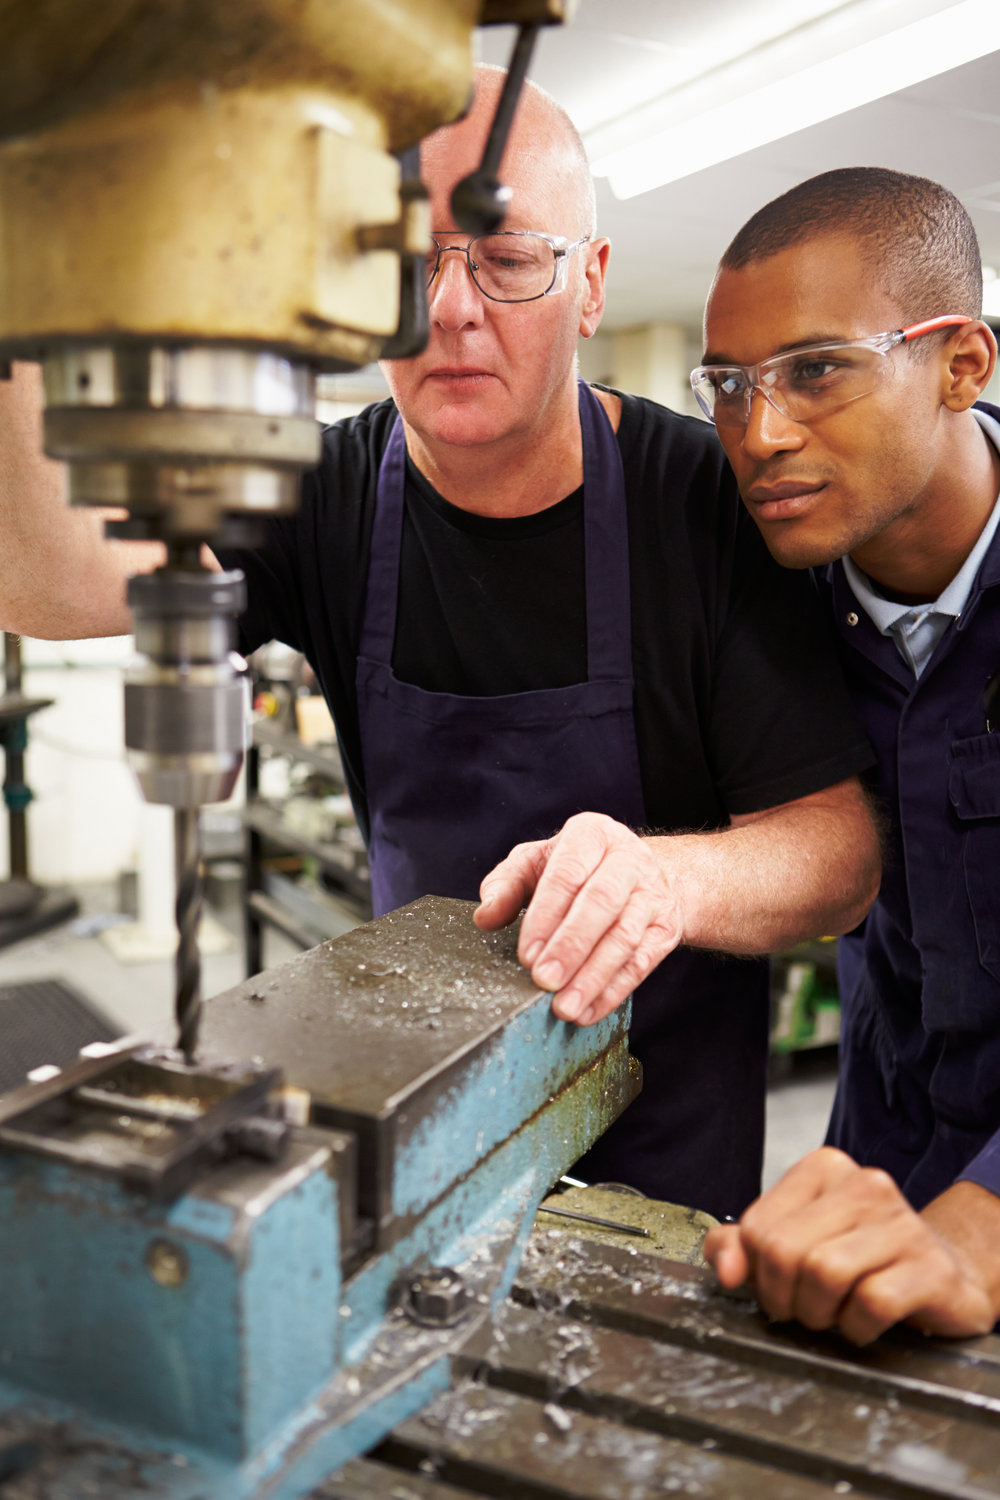 Our Work - We serve as statewide liaisons to business, industry, labor, and the state's education systems for the purpose of creating a highly skilled and readily available workforce critical to the success of the industries driving the state's economy and supporting Washington families.Learn More